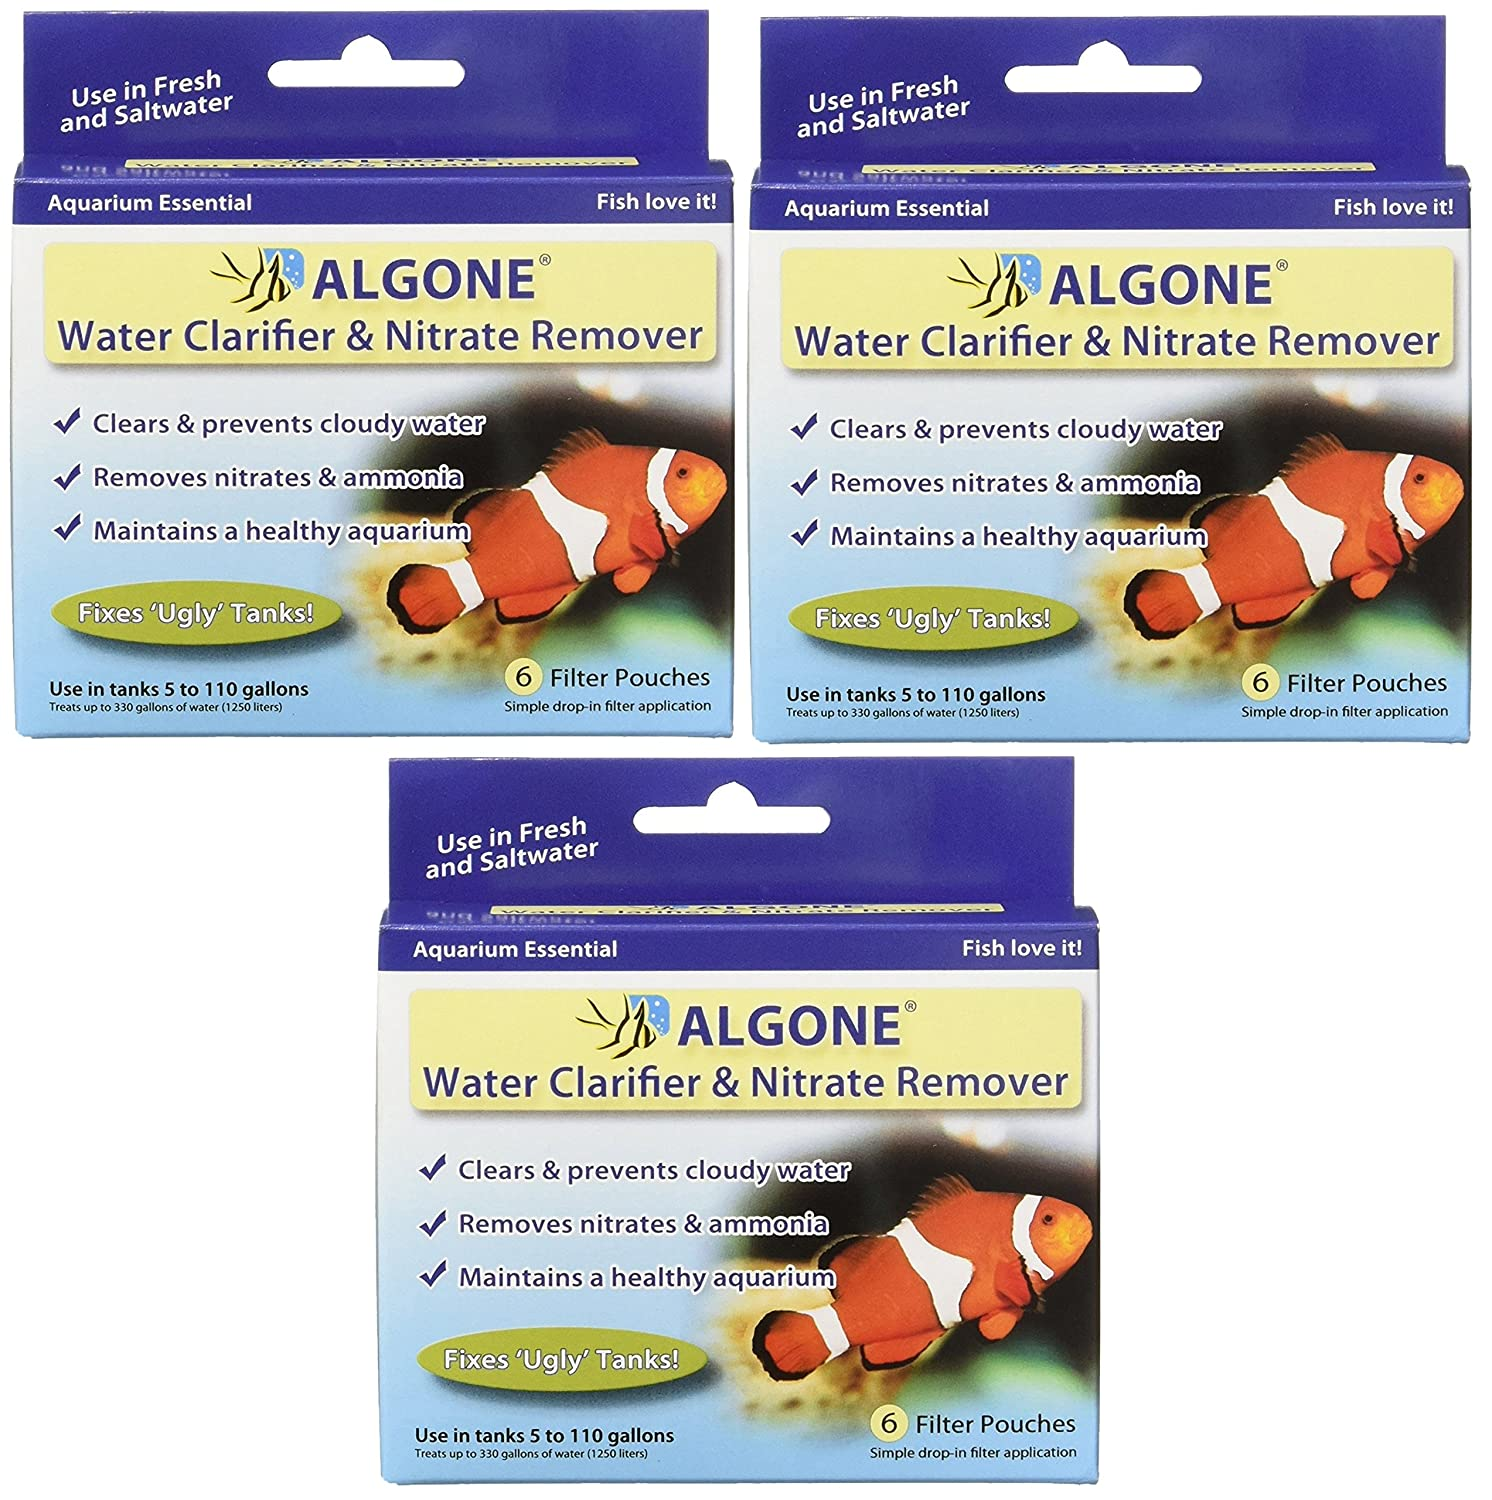 Aquarium Water Clarifier Algone and Nitrate Remover, 18 Filter Pouches (3 Packages with 6 Per Package)